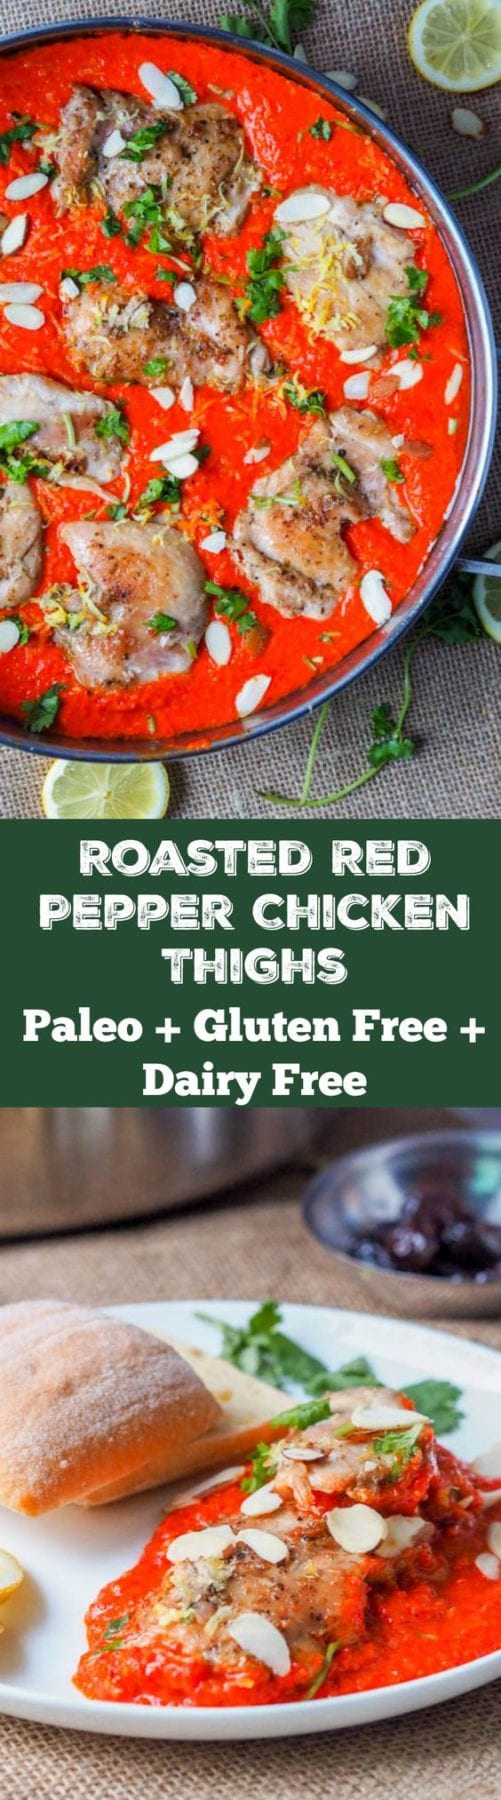 Seven ingredient roasted red pepper chicken is made with chicken thighs cooked in a super creamy roasted red pepper sauce with almonds and coconut milk. The ultimate dinner party meal. Easy to make and fit for a crowd. Paleo, Gluten-Free and Dairy-Free #paleo #chicken #dinner #healthy